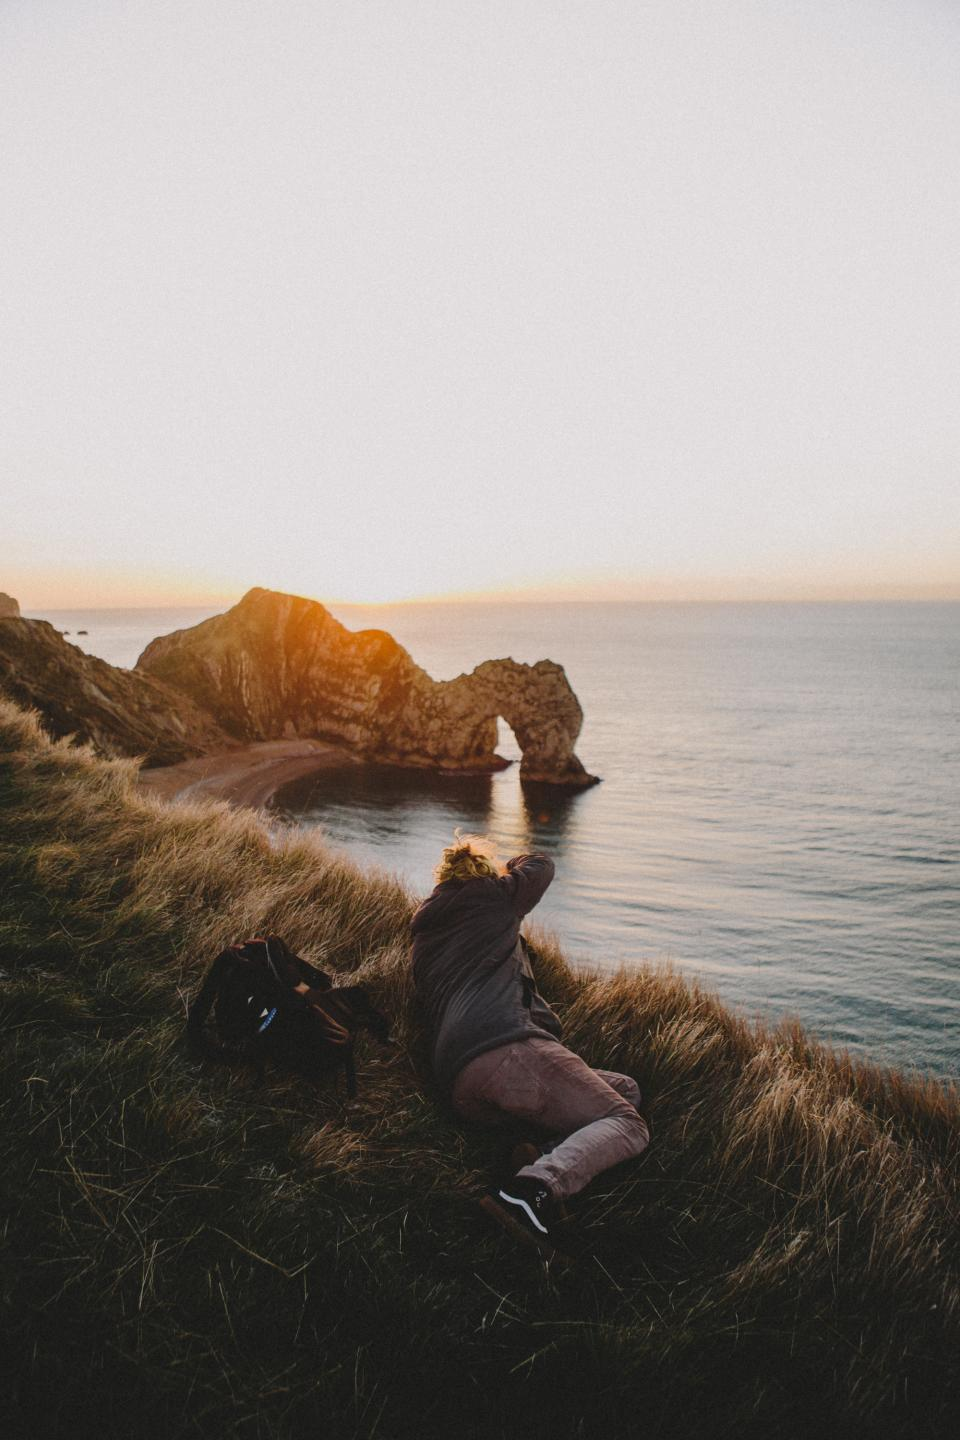 grass blur coast sea water sunrise cliff rocks view people man guy bag outdoor travel camera photographer